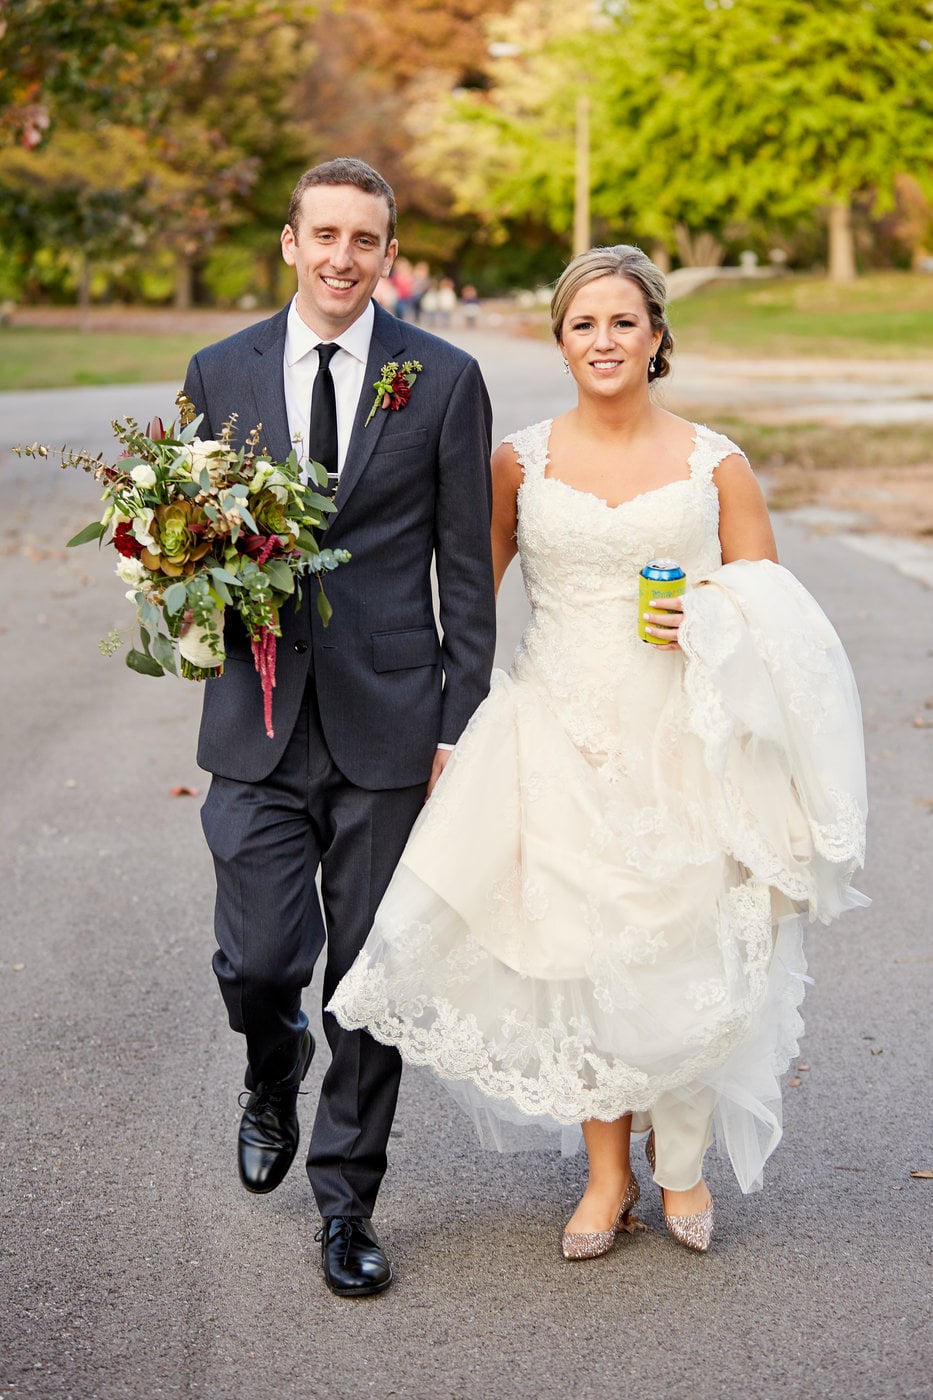 Why I Didn't Lose Weight Before My Wedding | POPSUGAR Fitness